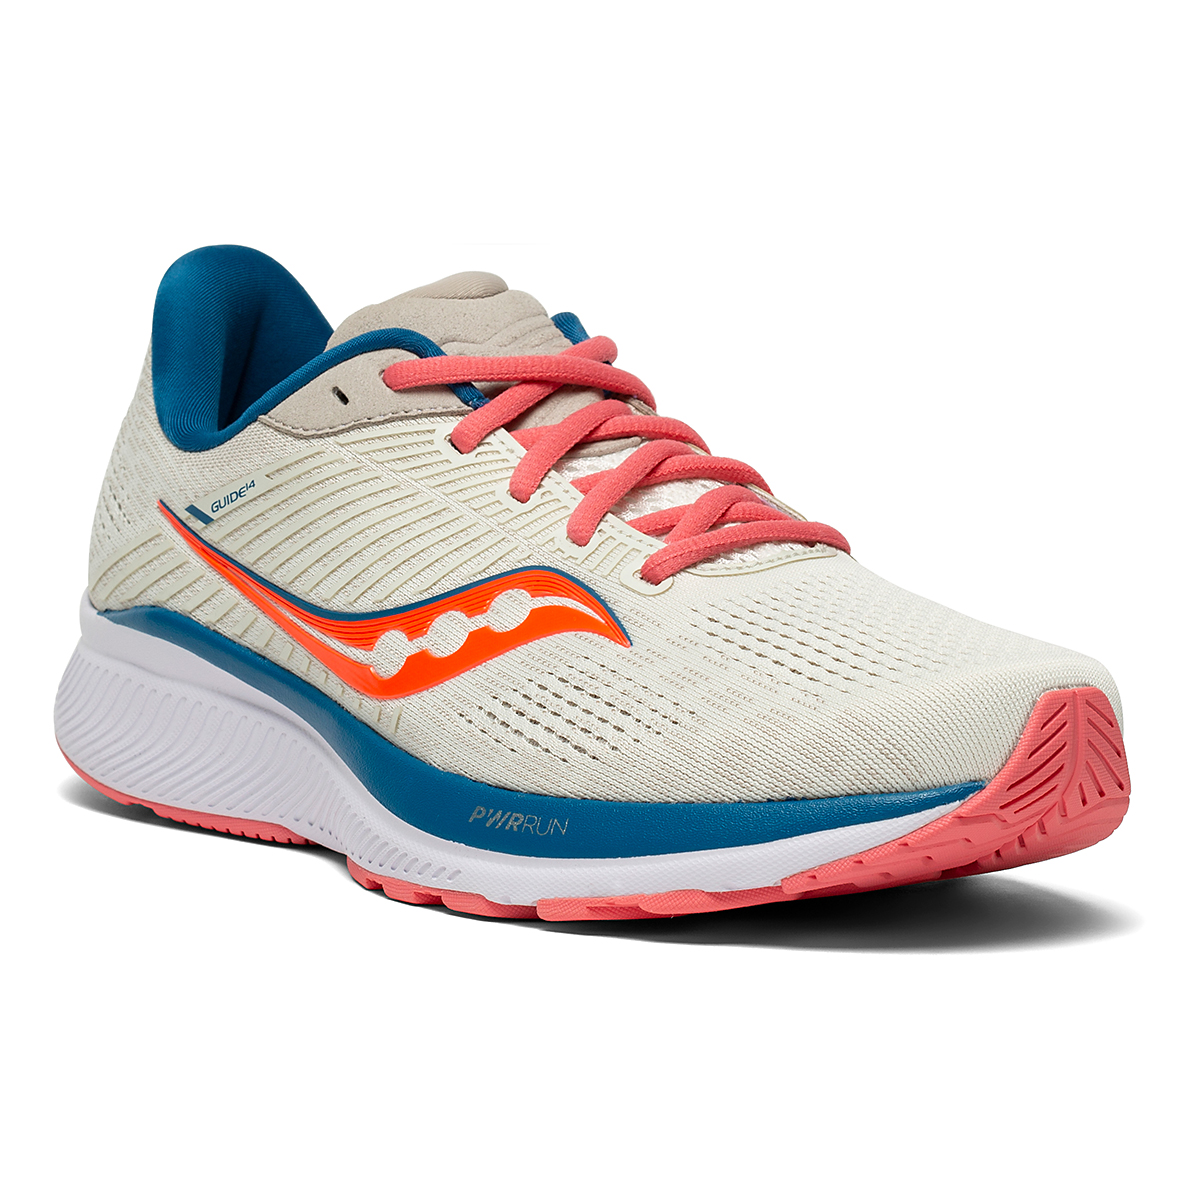 Women's Saucony Guide 14 Running Shoe, , large, image 5